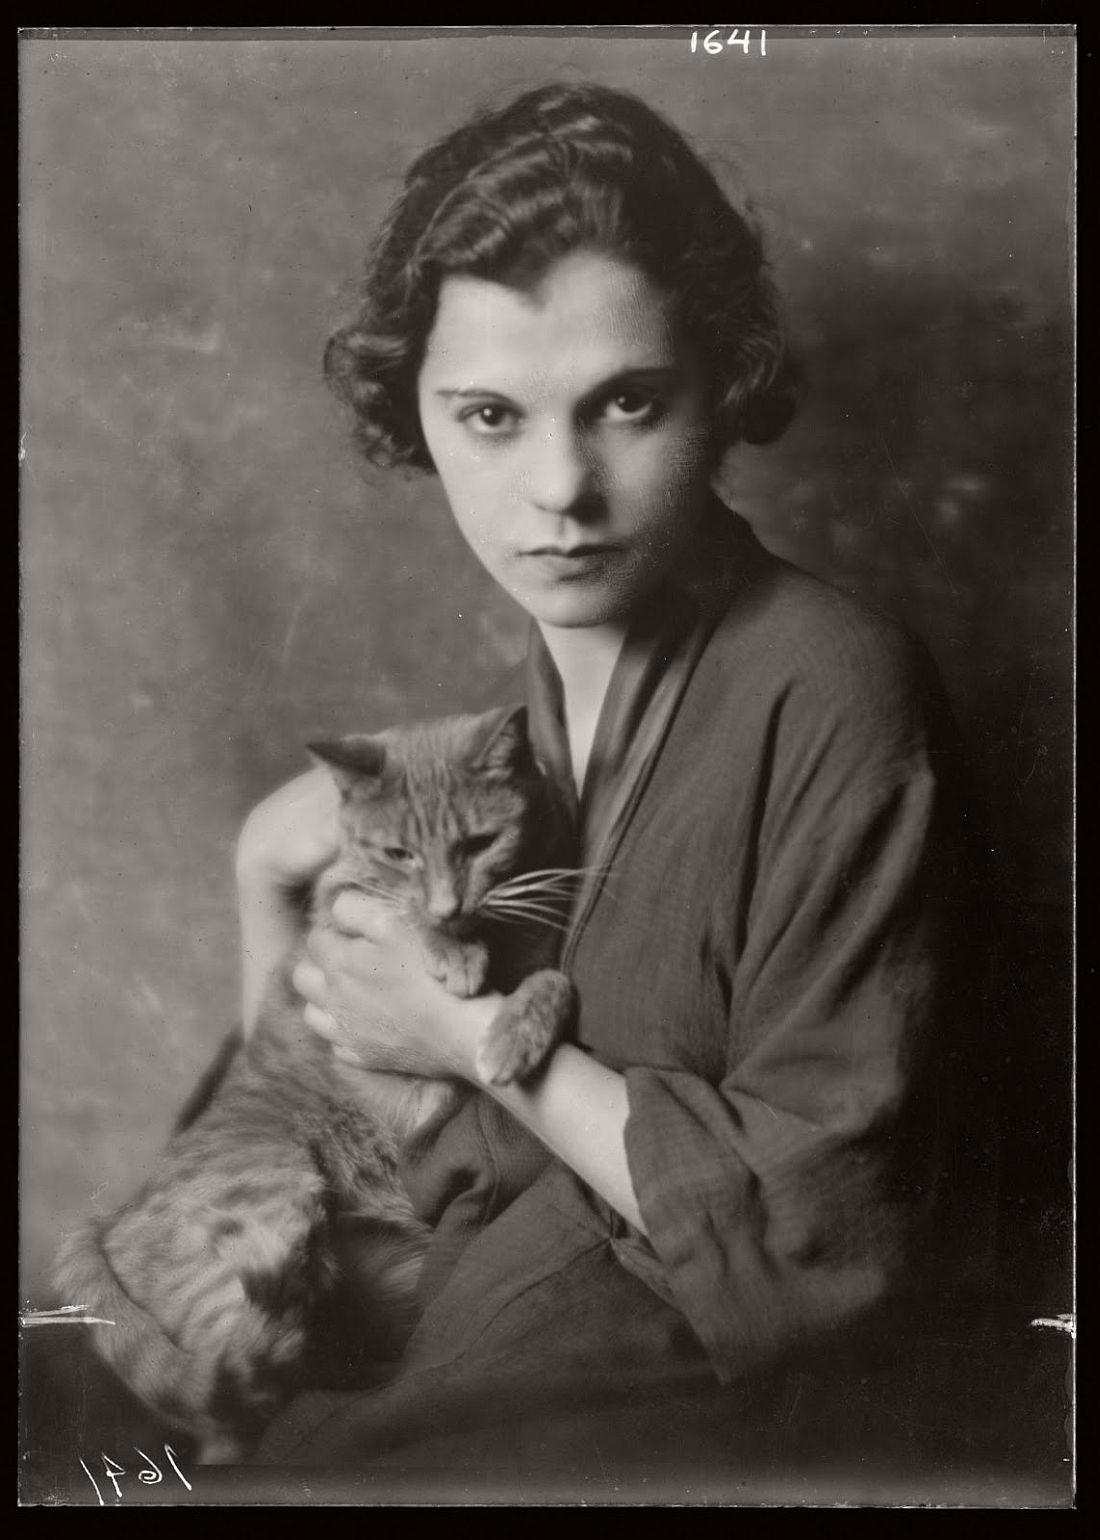 arnold-genthe-1910s-vintage-studio-portraits-of-girls-with-cat-17